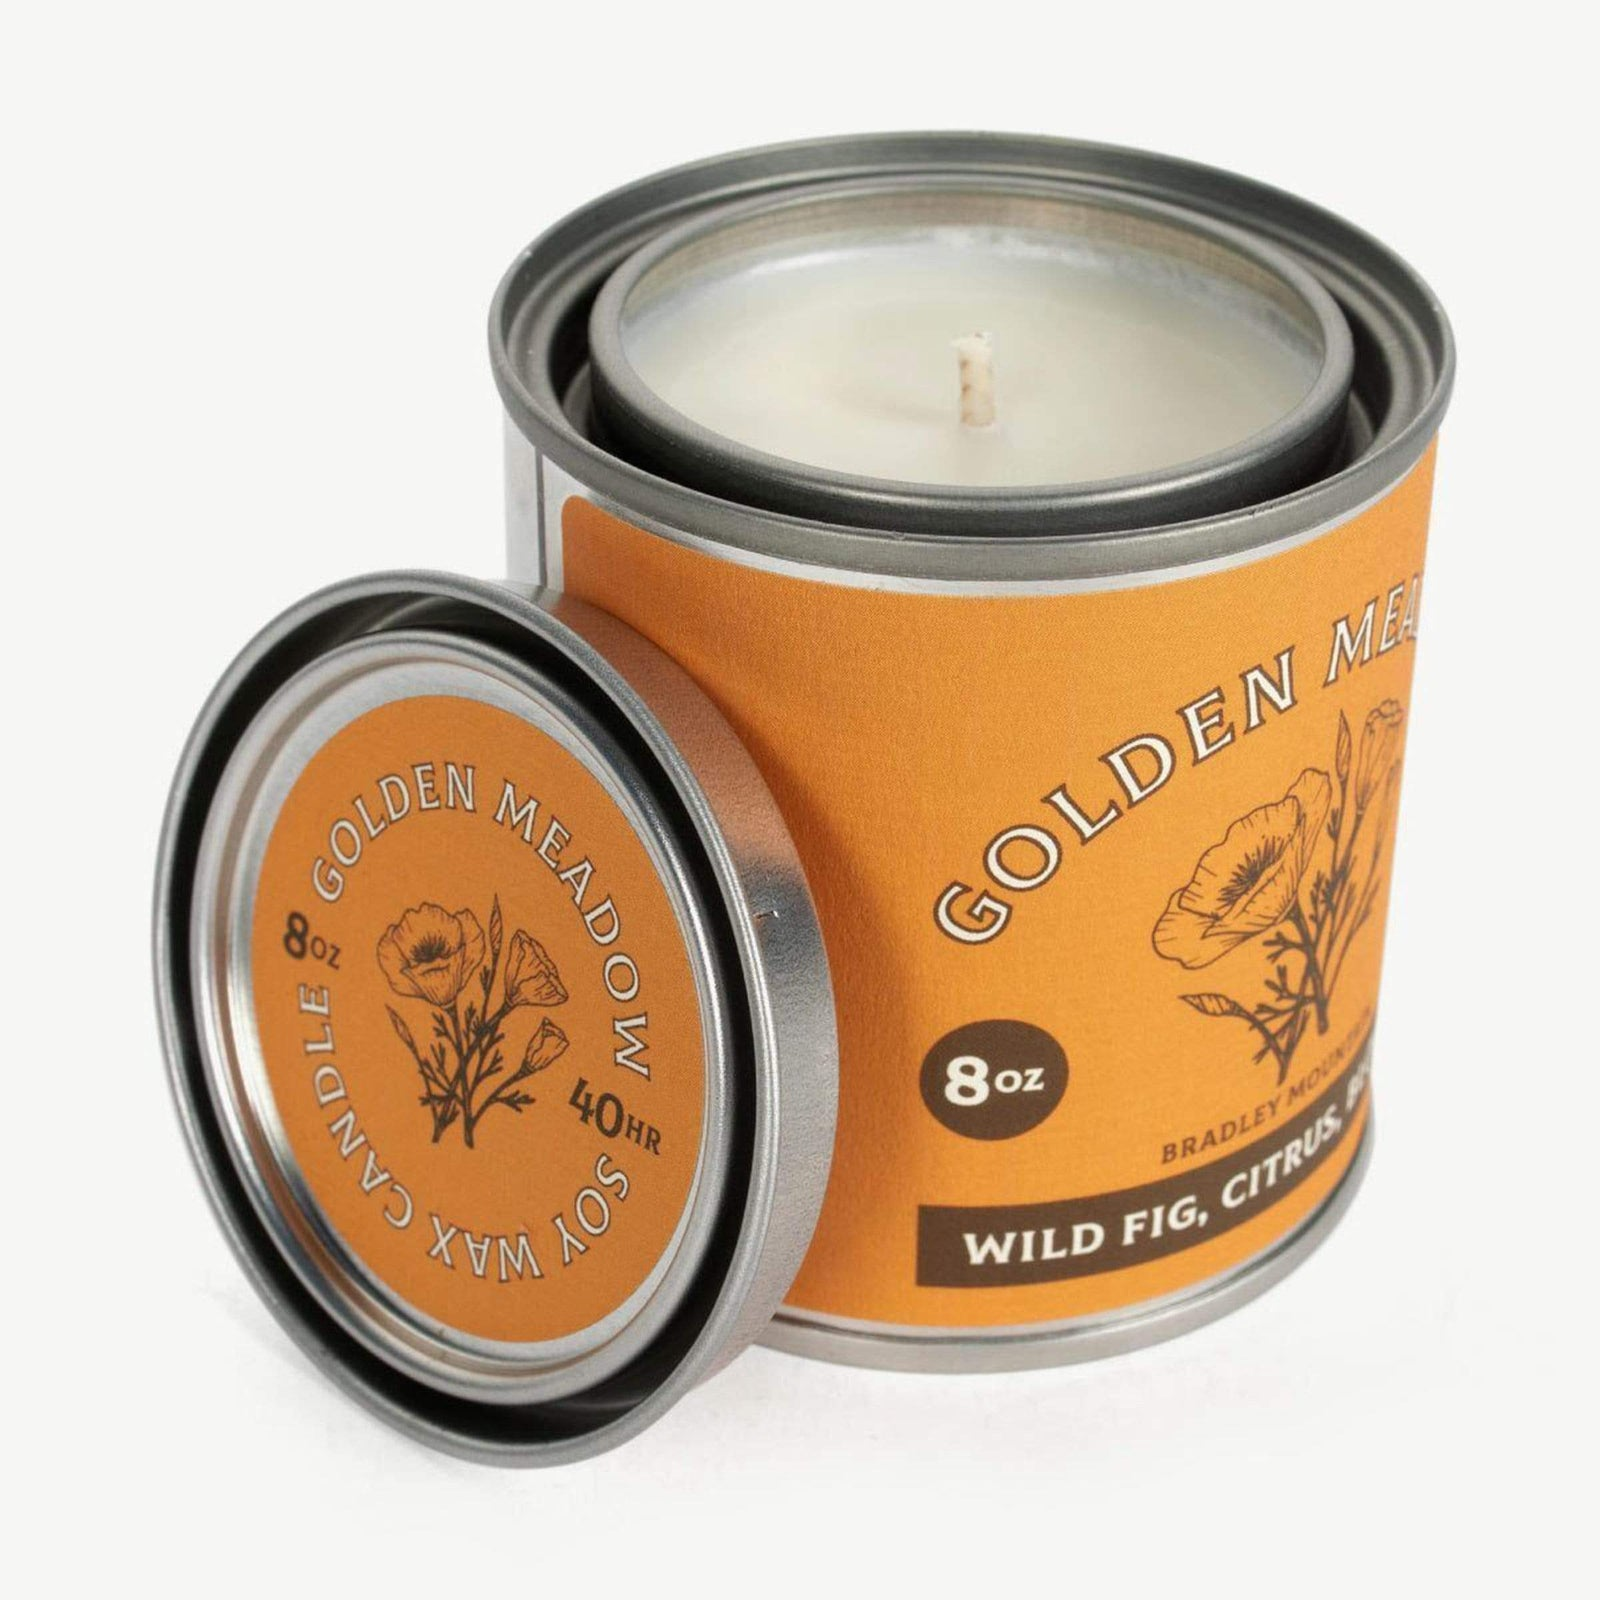 Bradley Mountain Golden Meadow Travel Candle